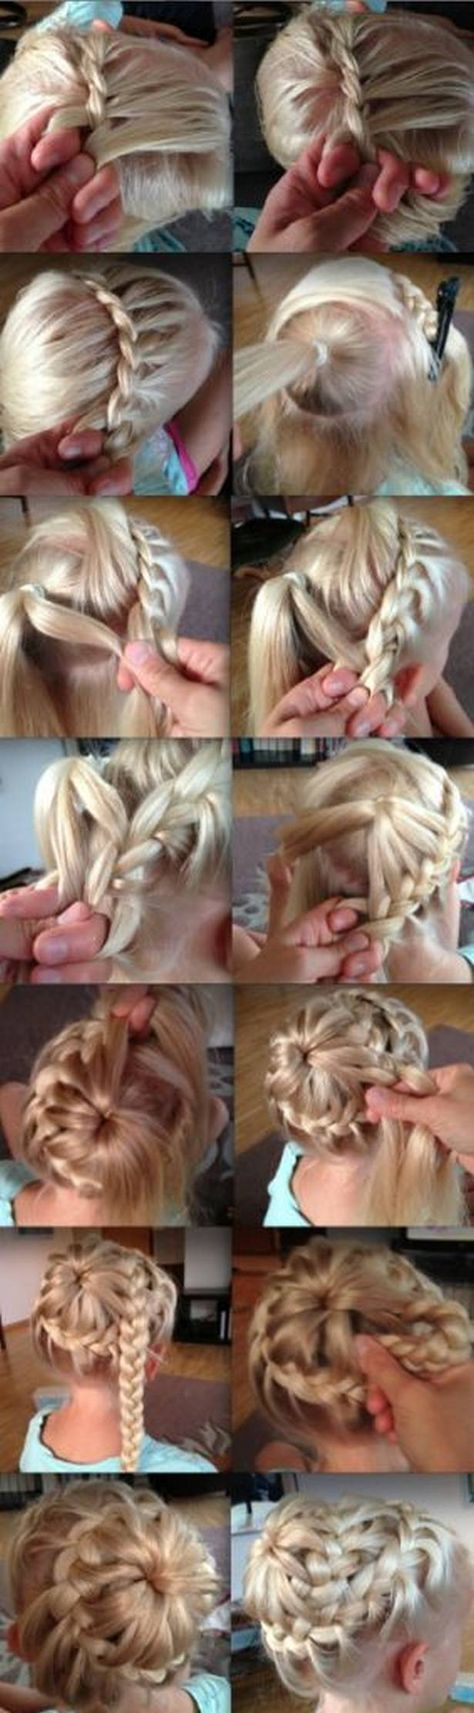 Hair step by step guides to show you how to create stunning hairstyles. #hairstyles #hairguide  #hairtutorial #hairstepbystep #updo #hairup #hairupdo #summerhair